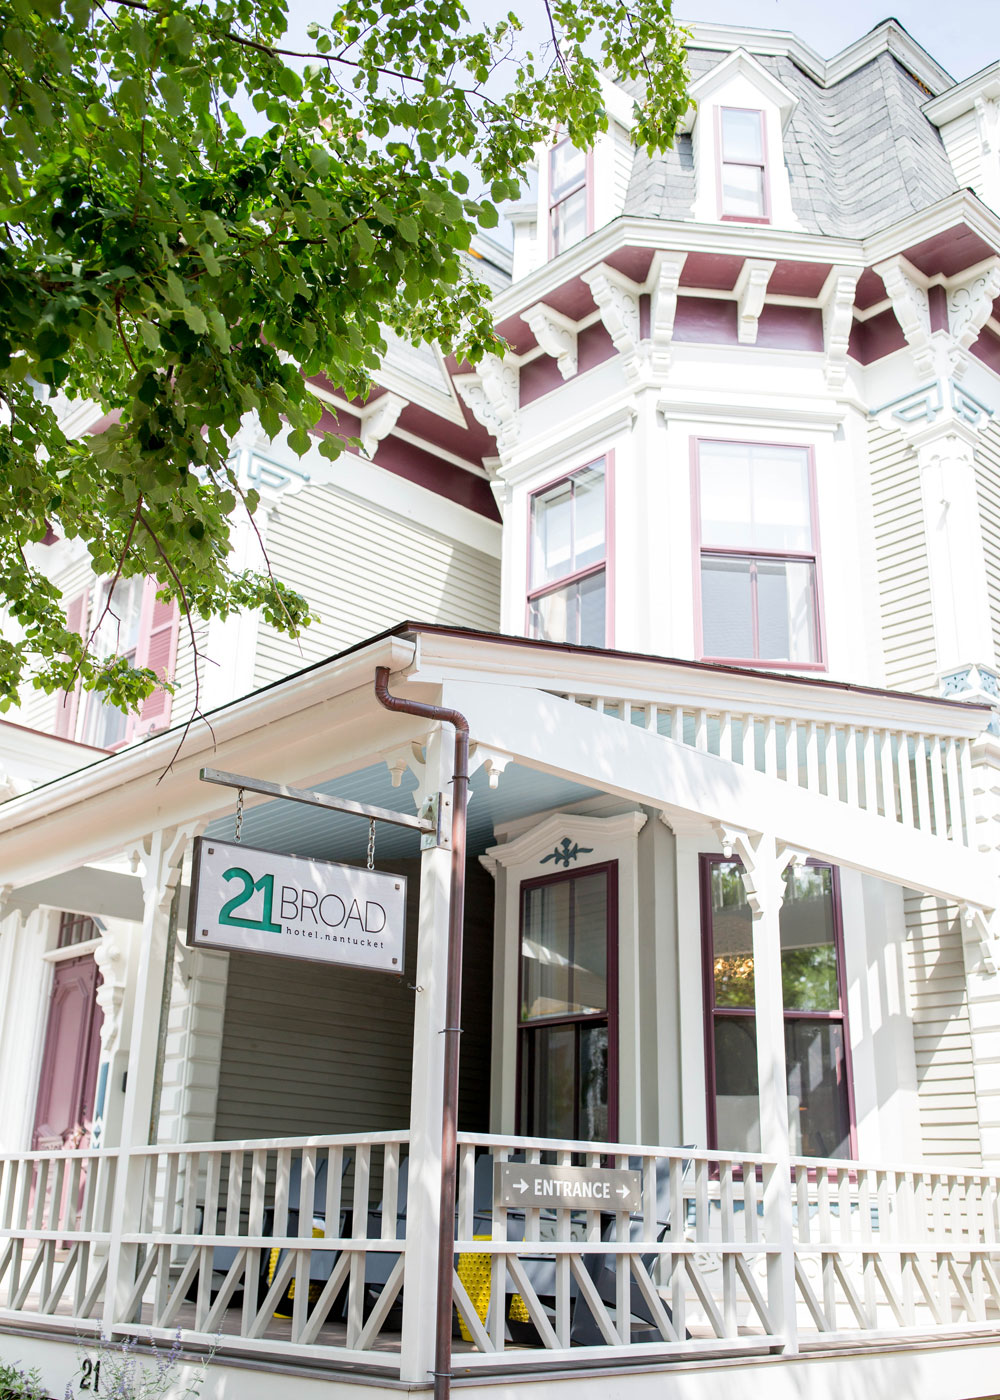 21 Broad Hotel Nantucket